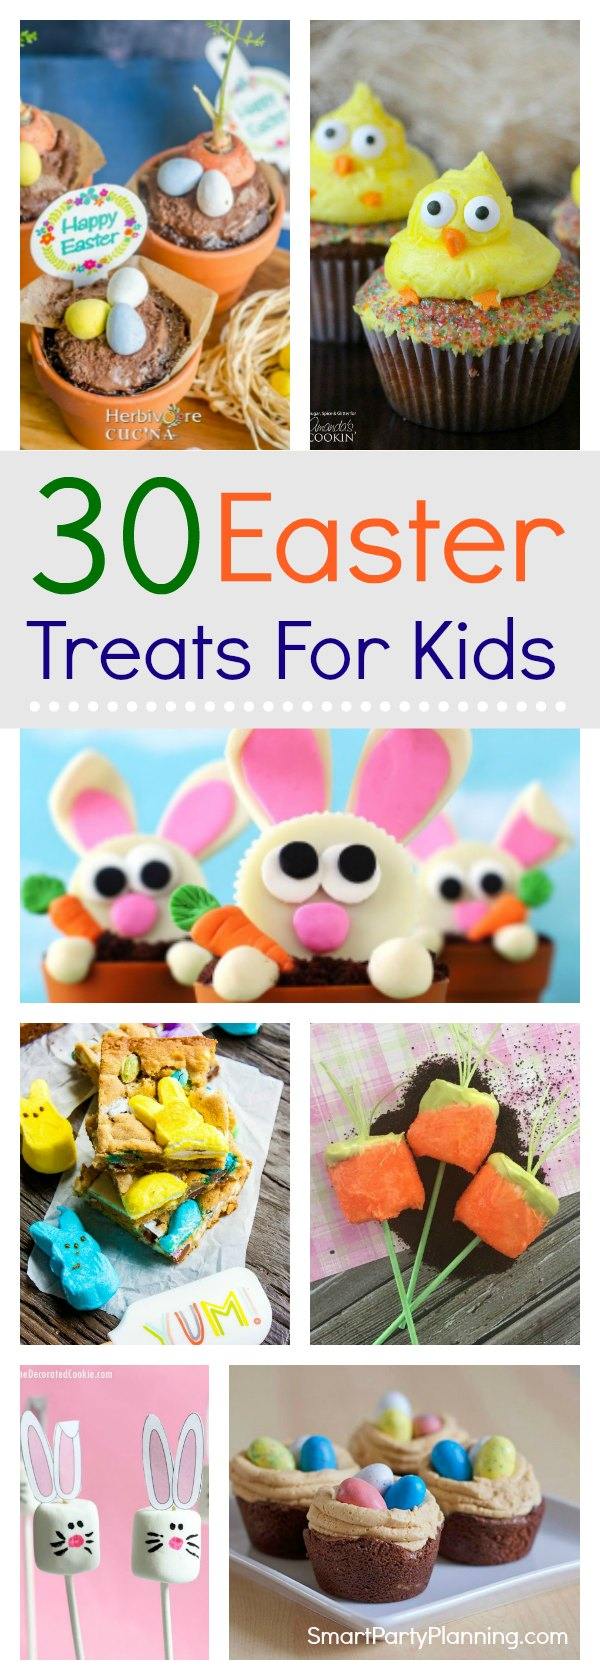 30 Easter Treats For Kids